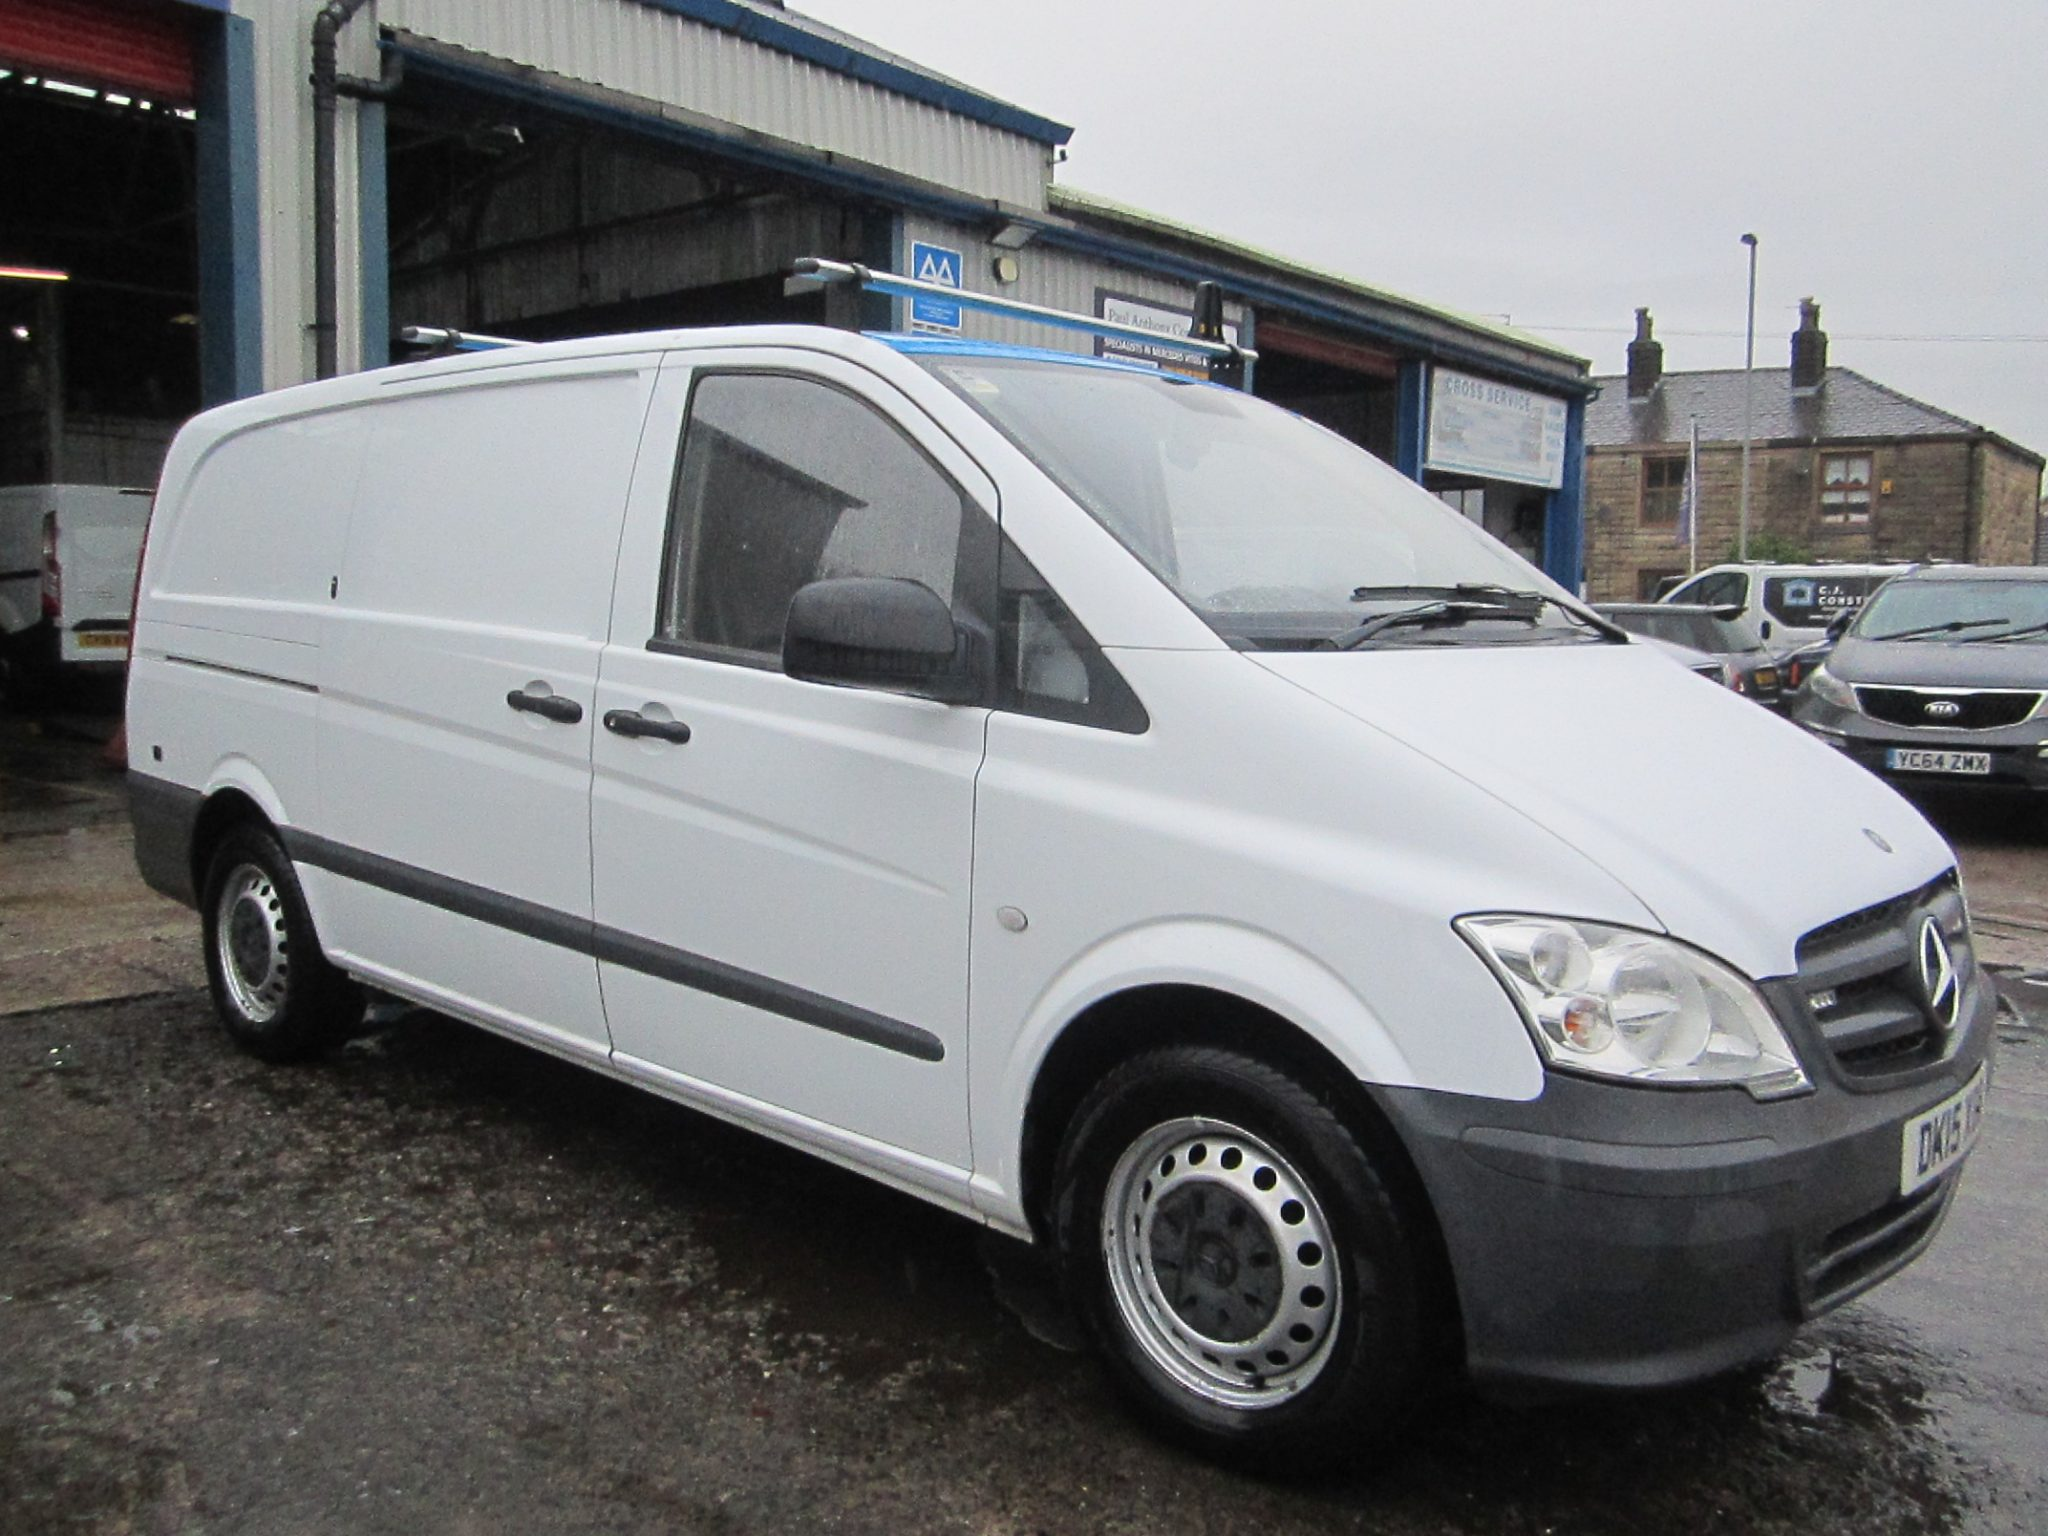 VITO 113 CDI LWB WORK SHOP VAN